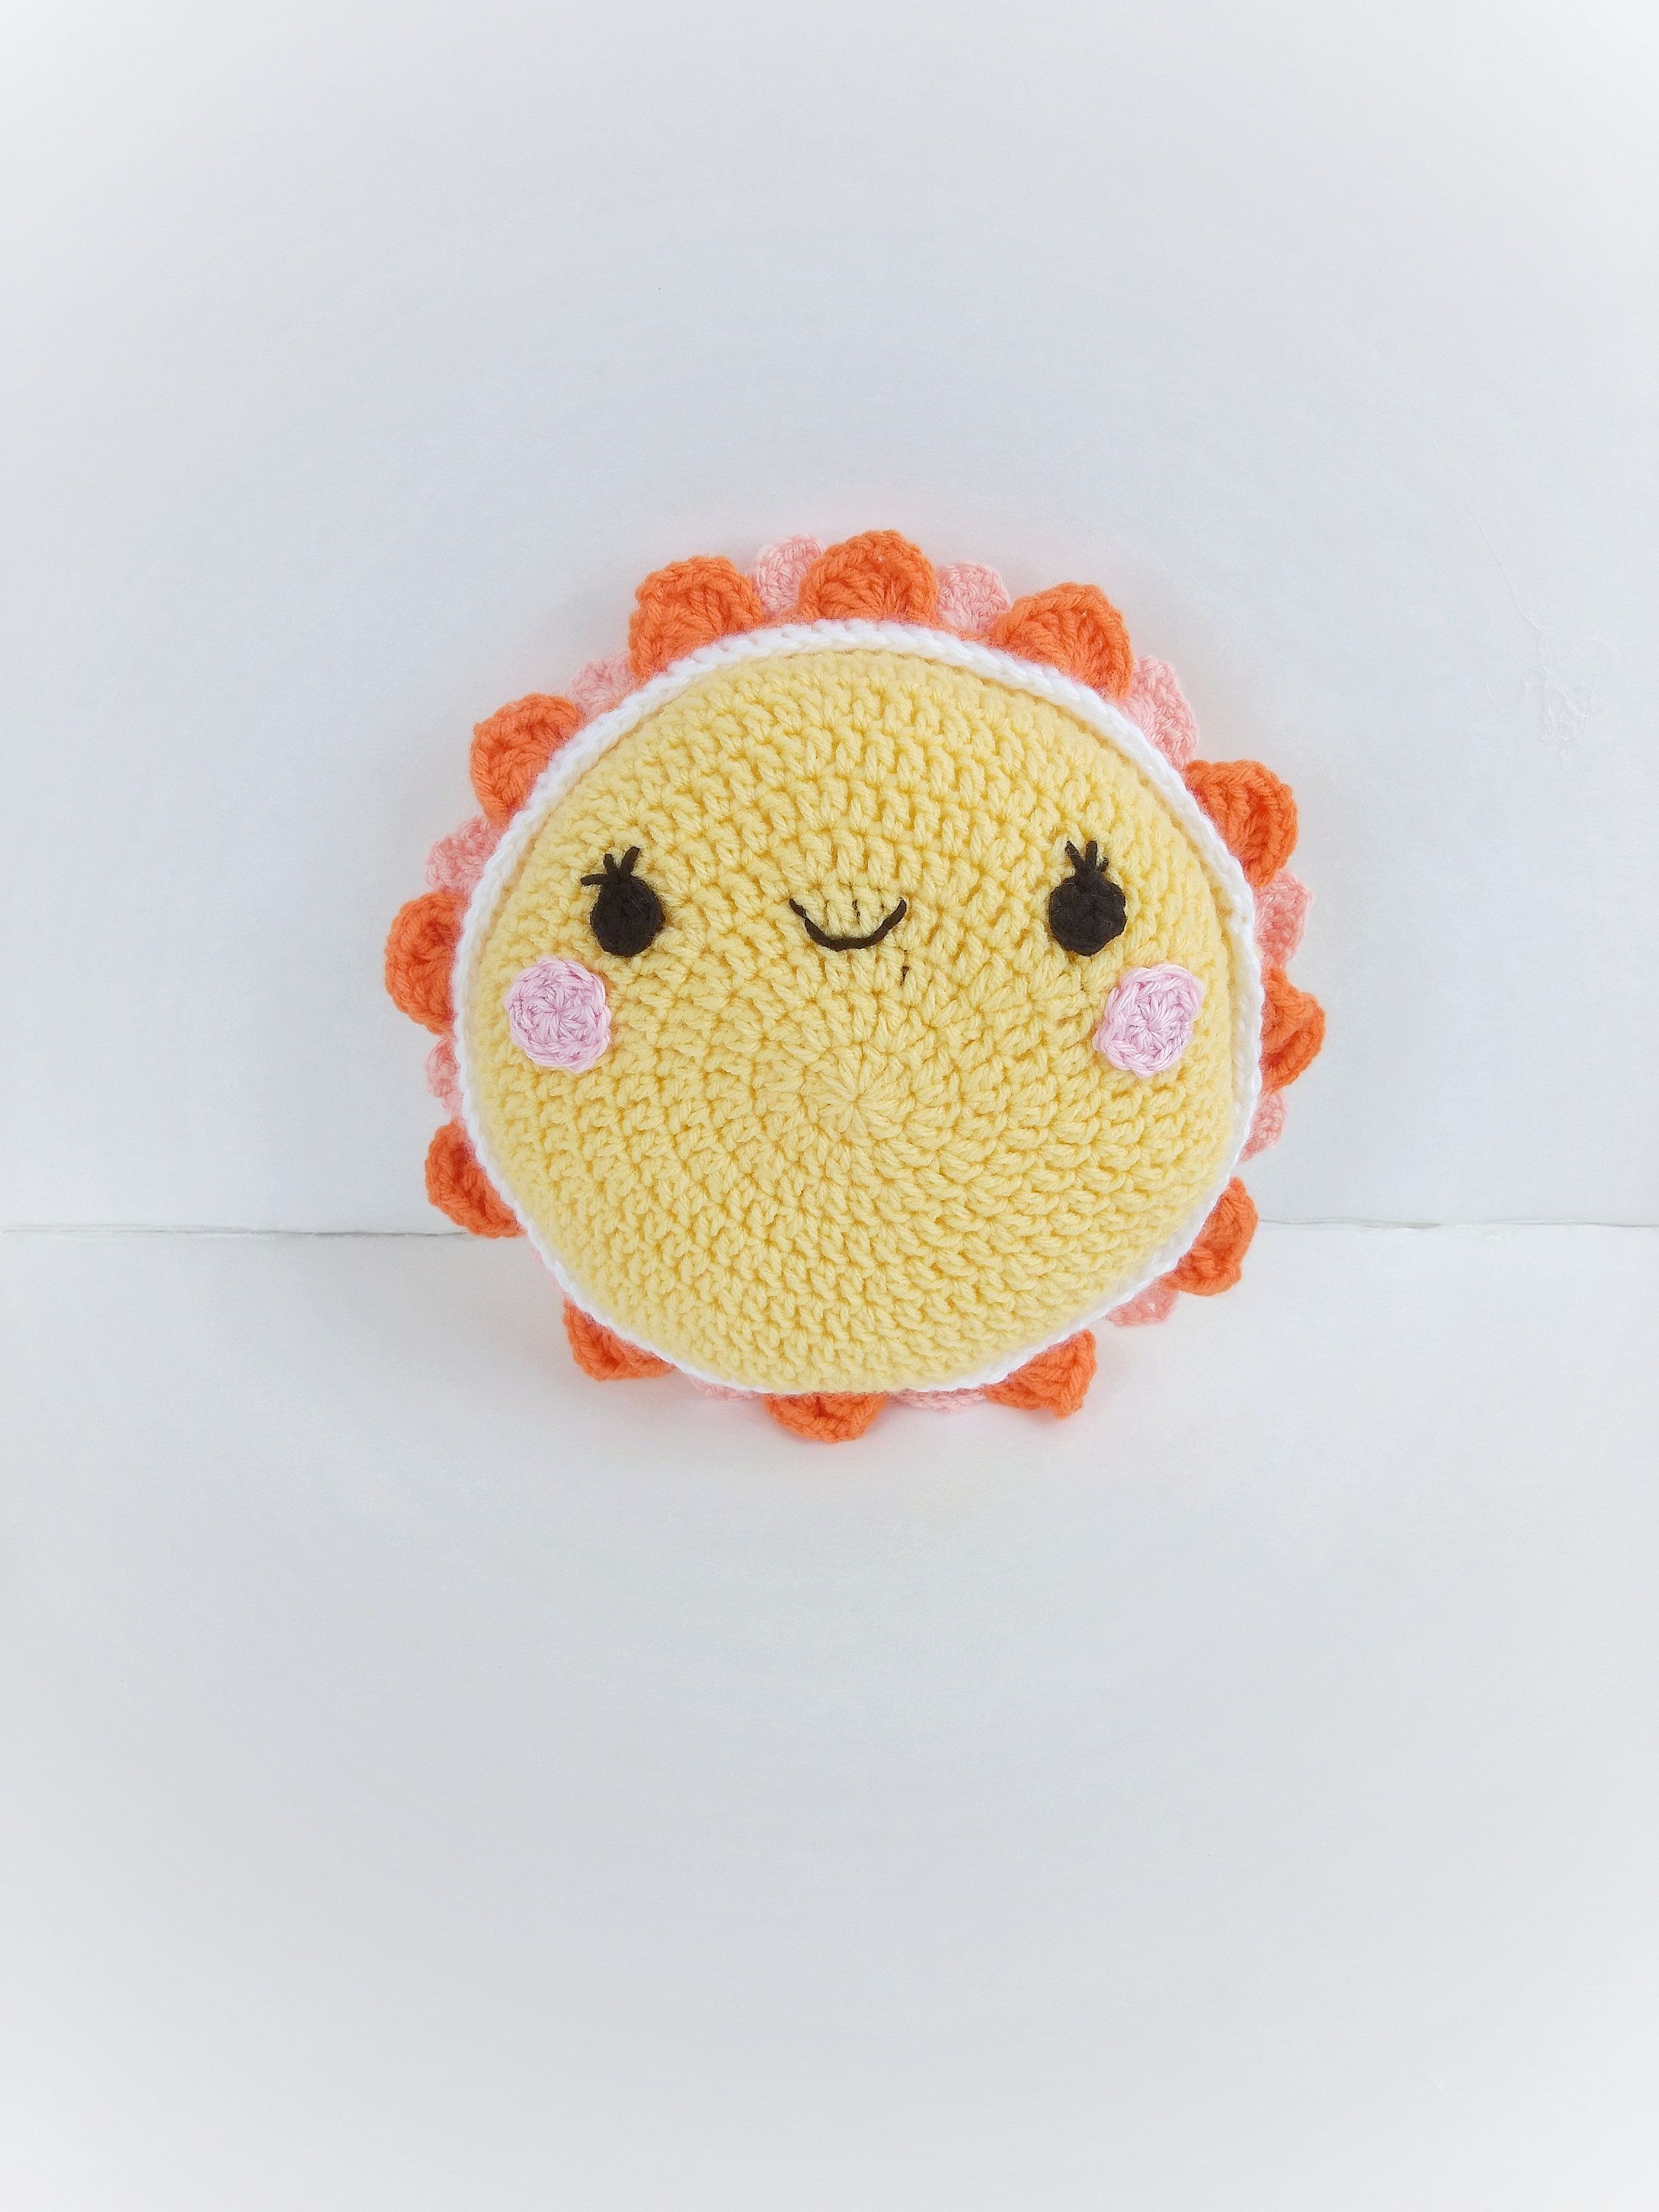 Sun Amigurumi | Crochet toys patterns, Knitting patterns toys ... | 3000x2250